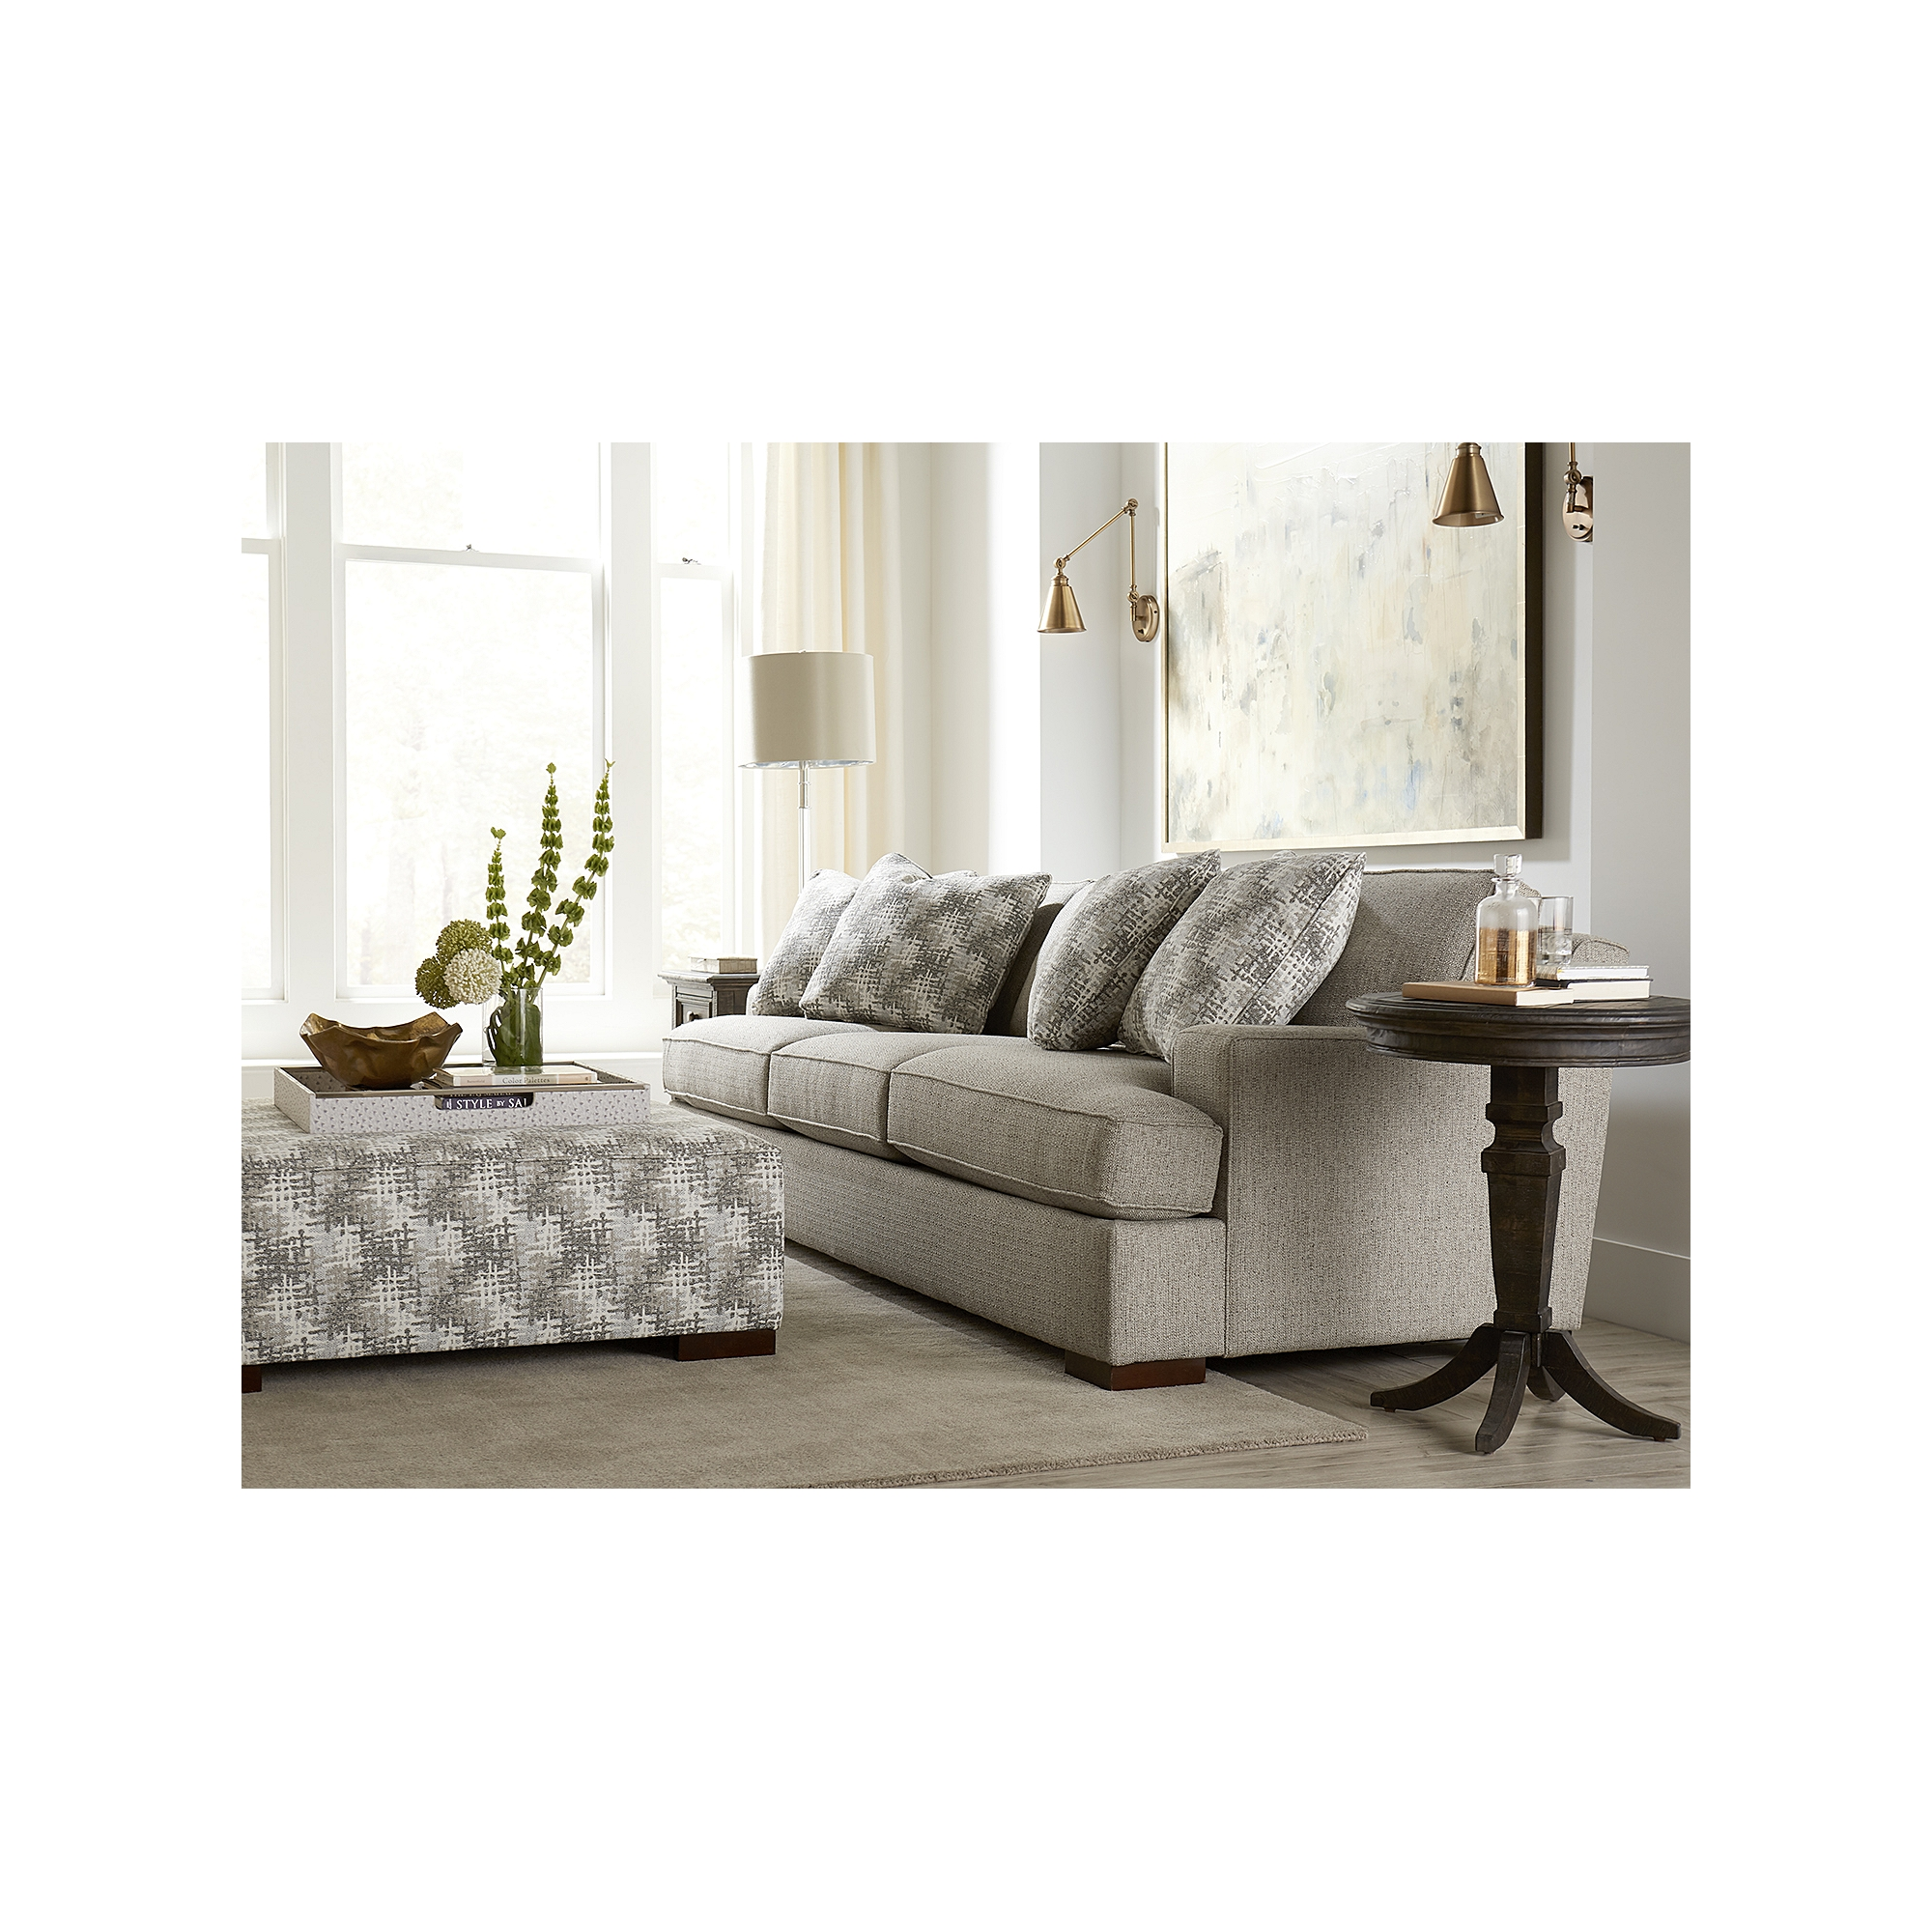 Alternate Reese Sofa 102 Inch Image